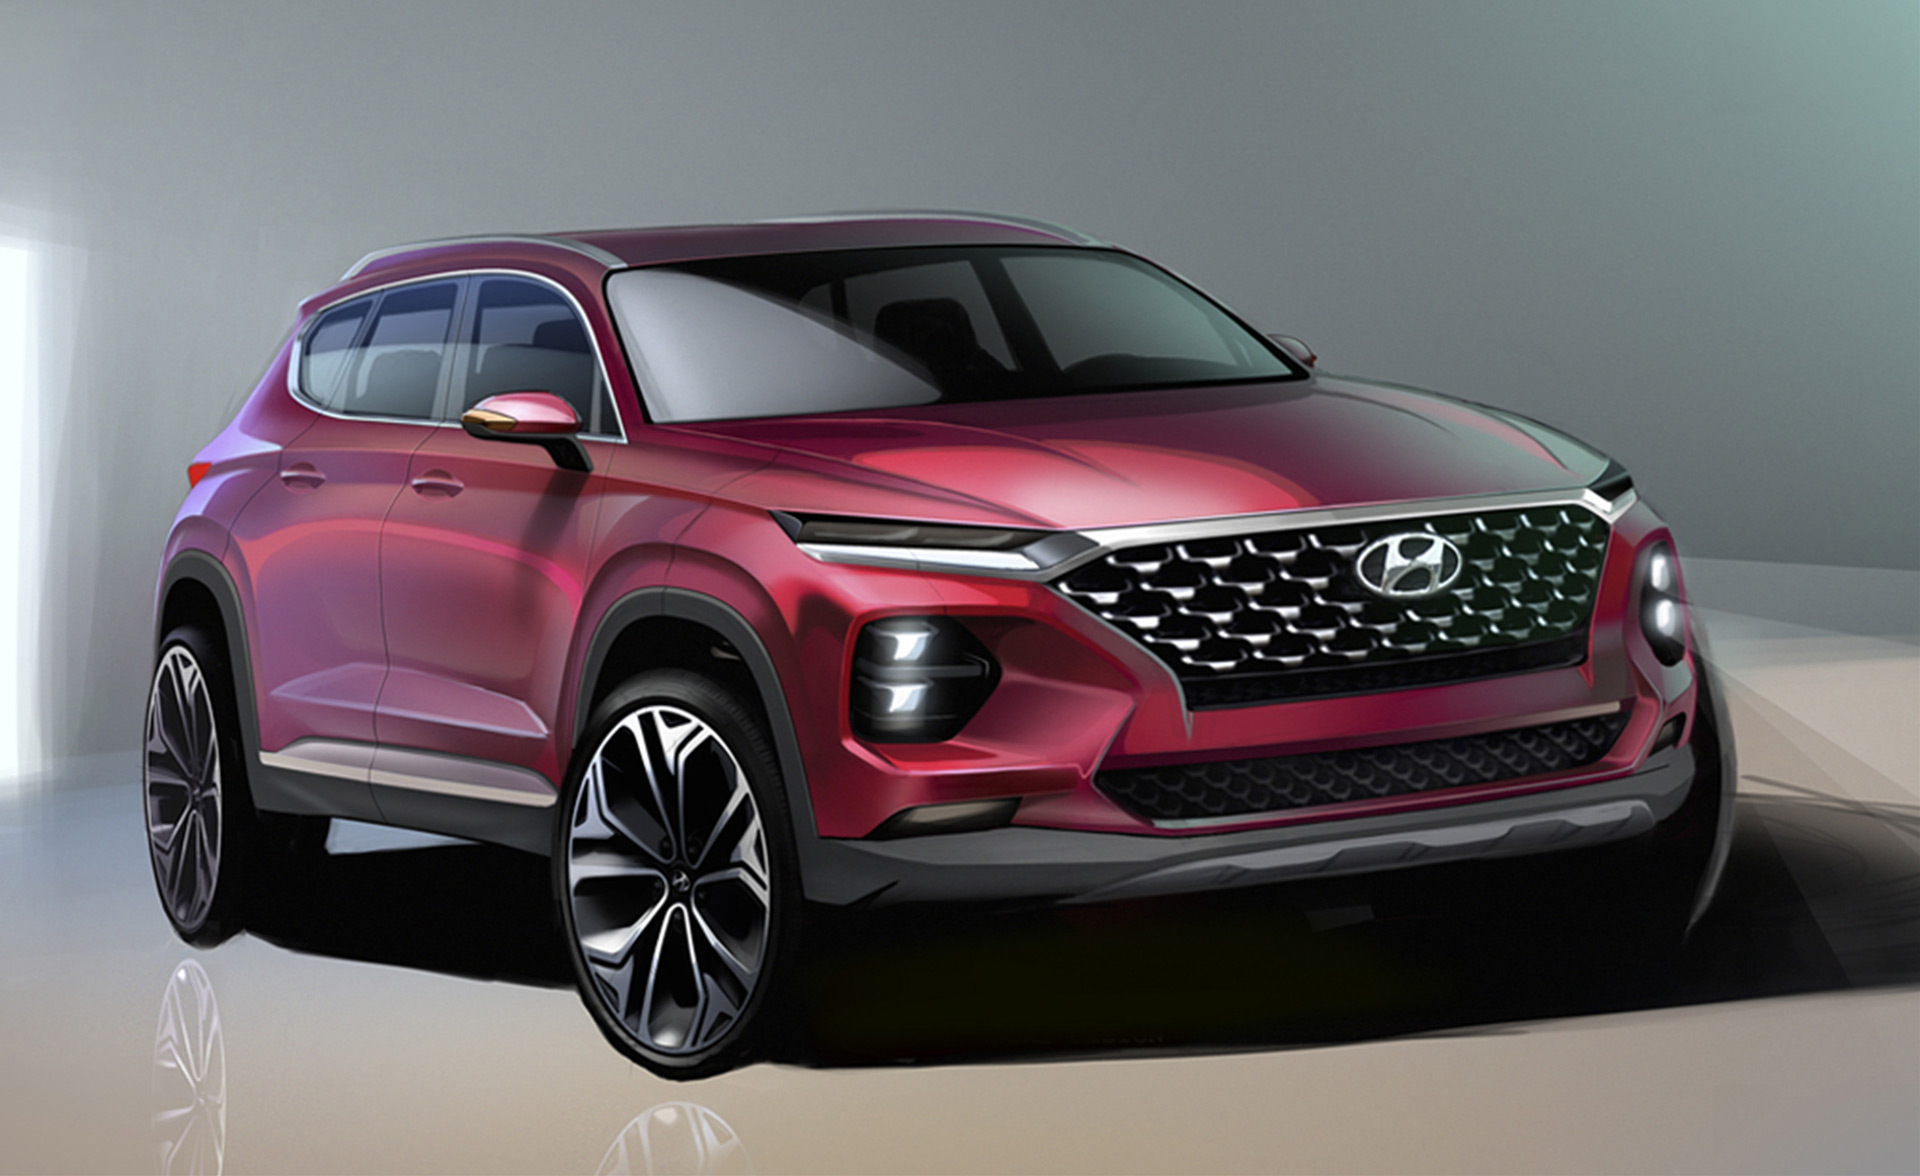 2019 Hyundai Santa Fe teased ahead of Geneva debut